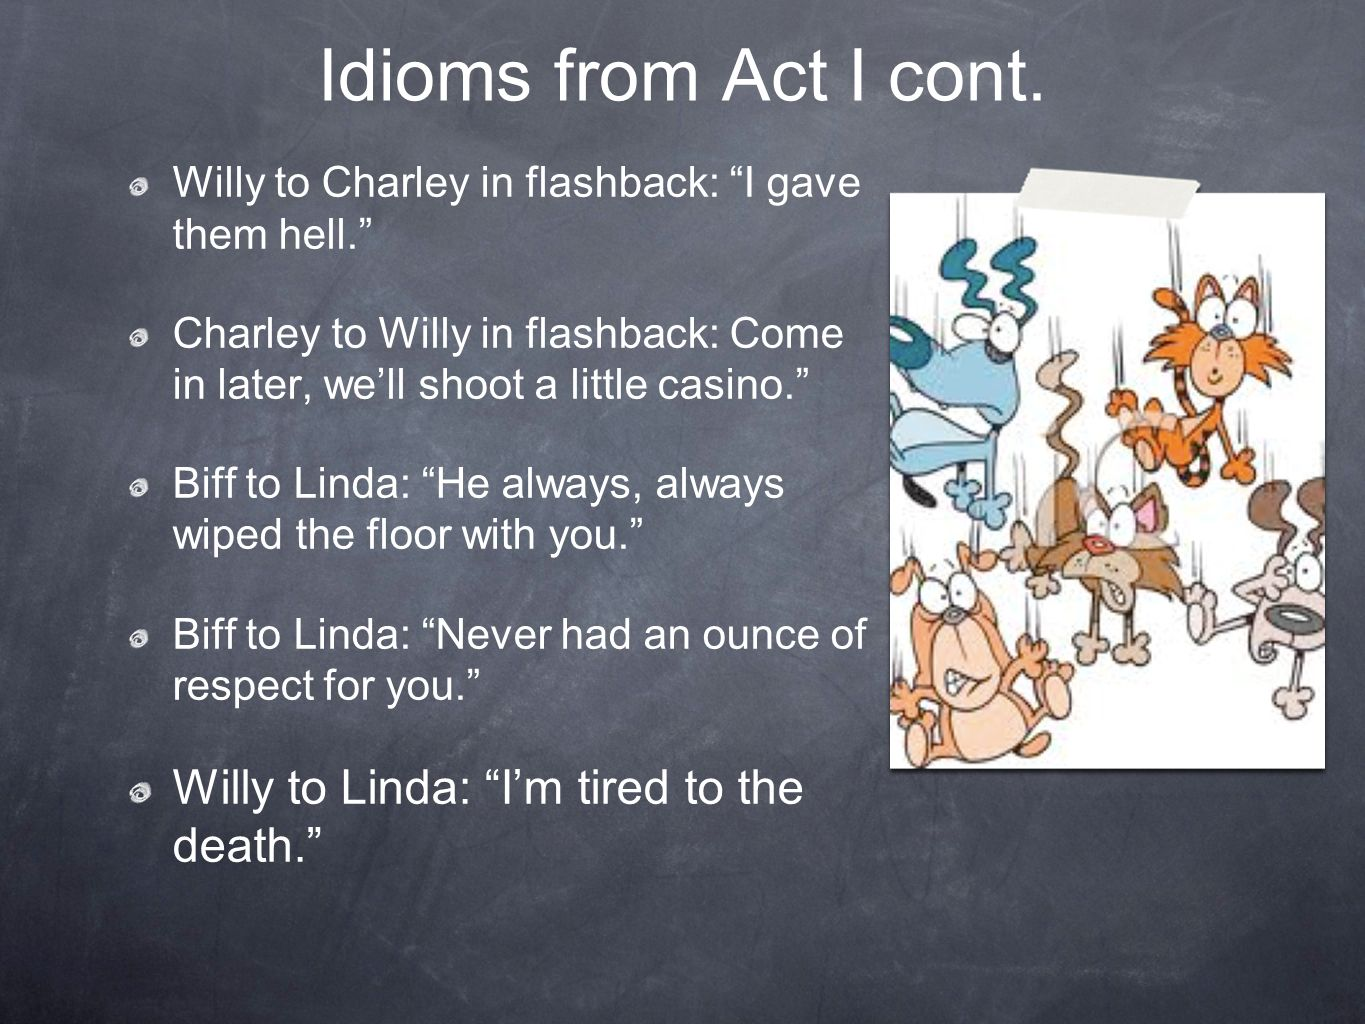 Idioms from Act I cont. Willy to Linda: I'm tired to the death.